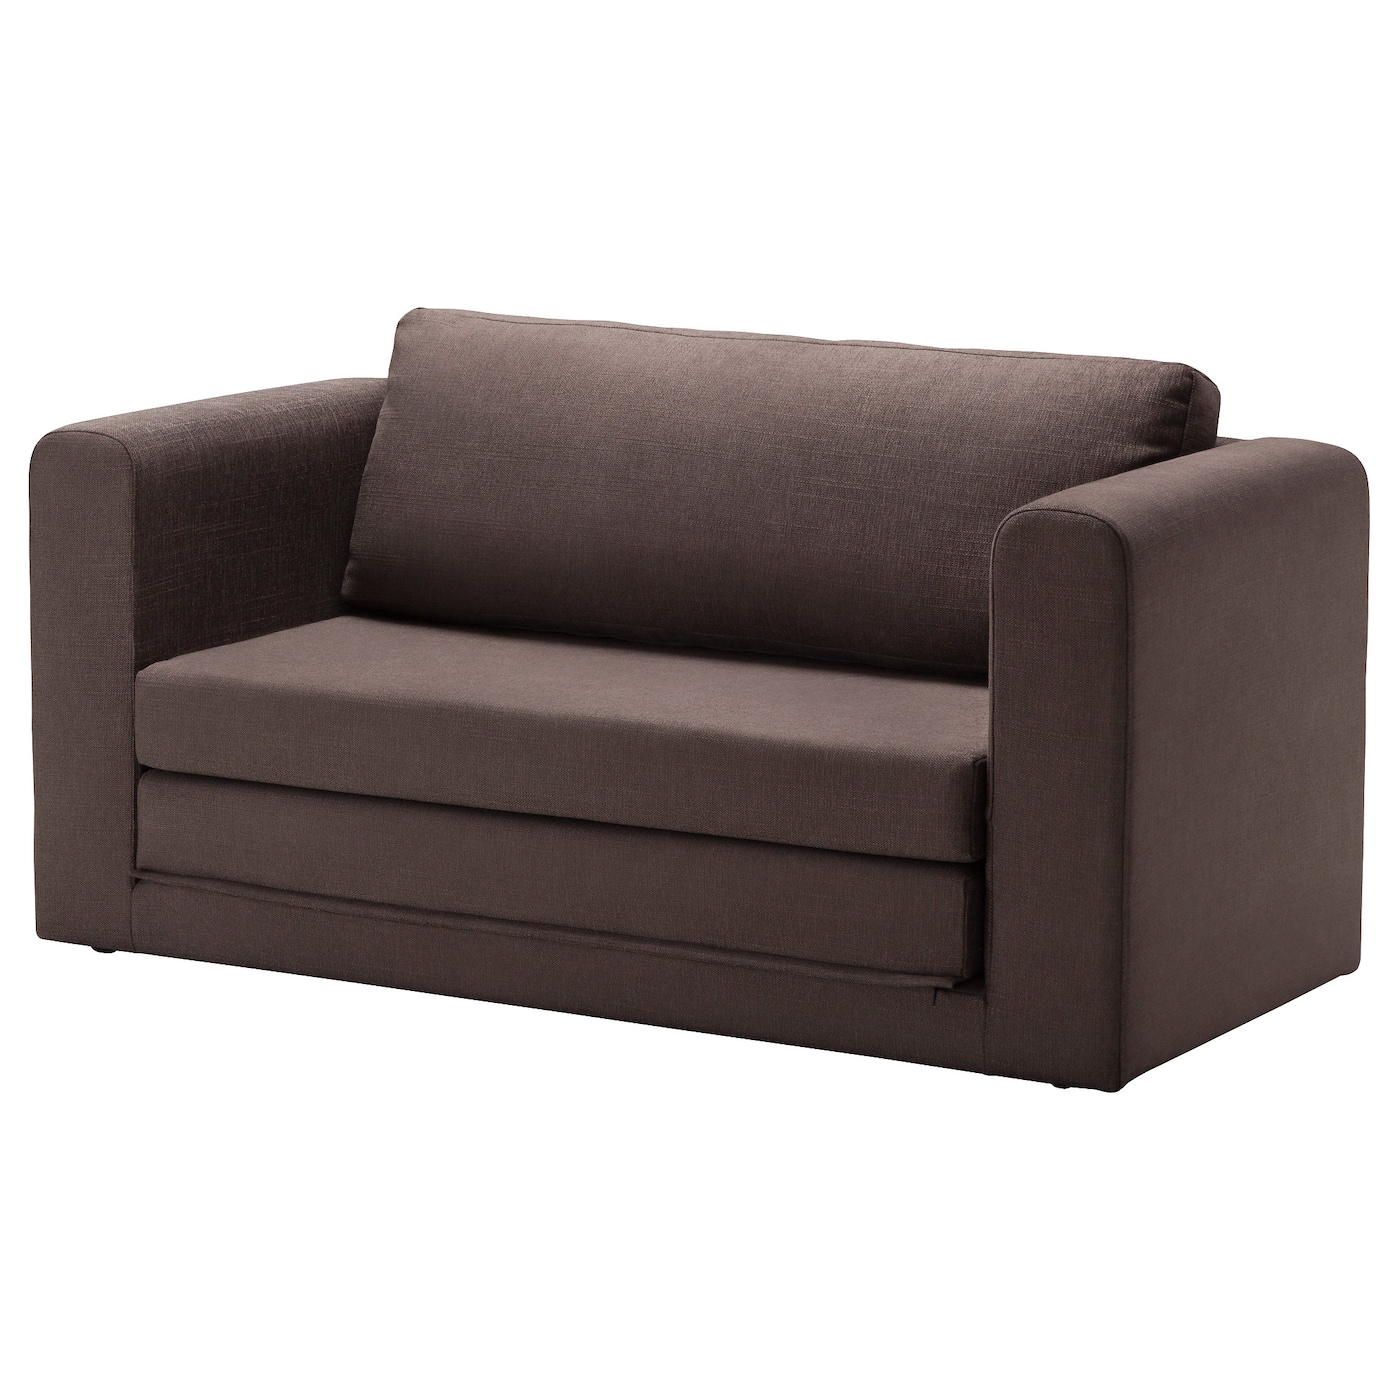 Sofa Beds Chair Beds IKEA Ireland Dublin